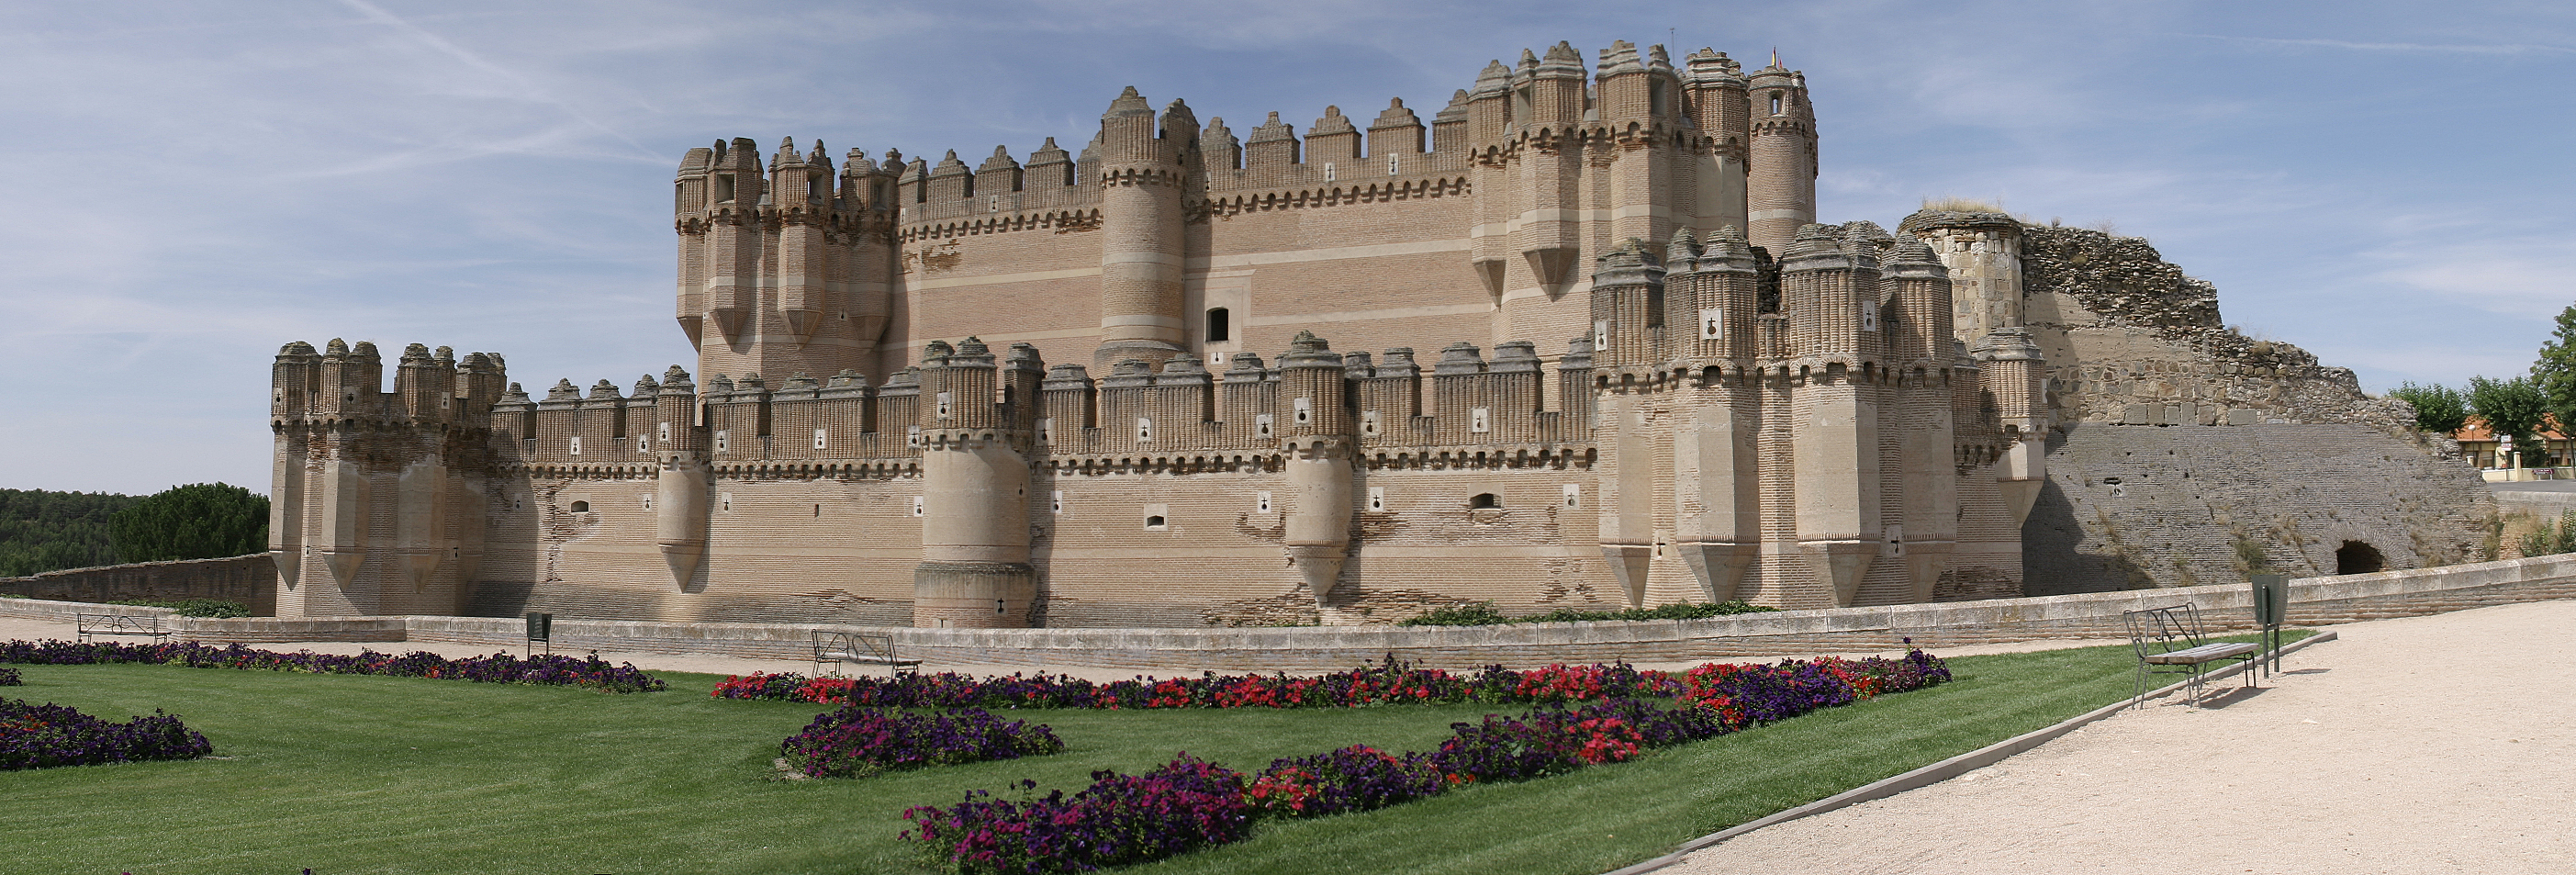 http://upload.wikimedia.org/wikipedia/commons/0/0a/Castillo_de_Coca.jpg